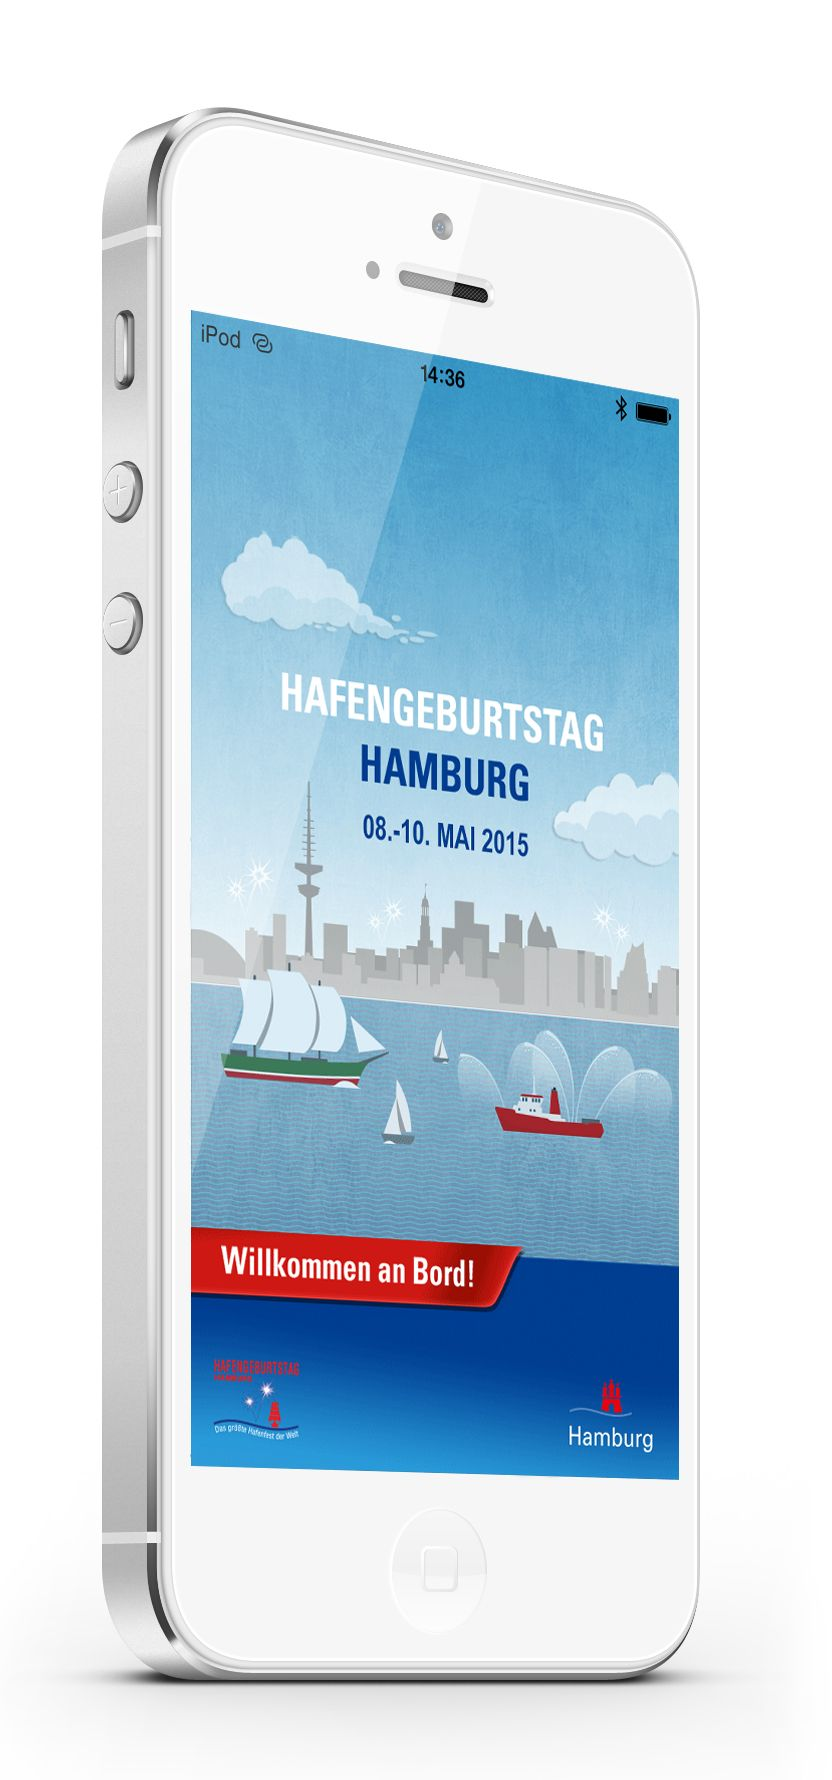 ab sofort verf gbar neue app zum 826 hafengeburtstag hamburg. Black Bedroom Furniture Sets. Home Design Ideas